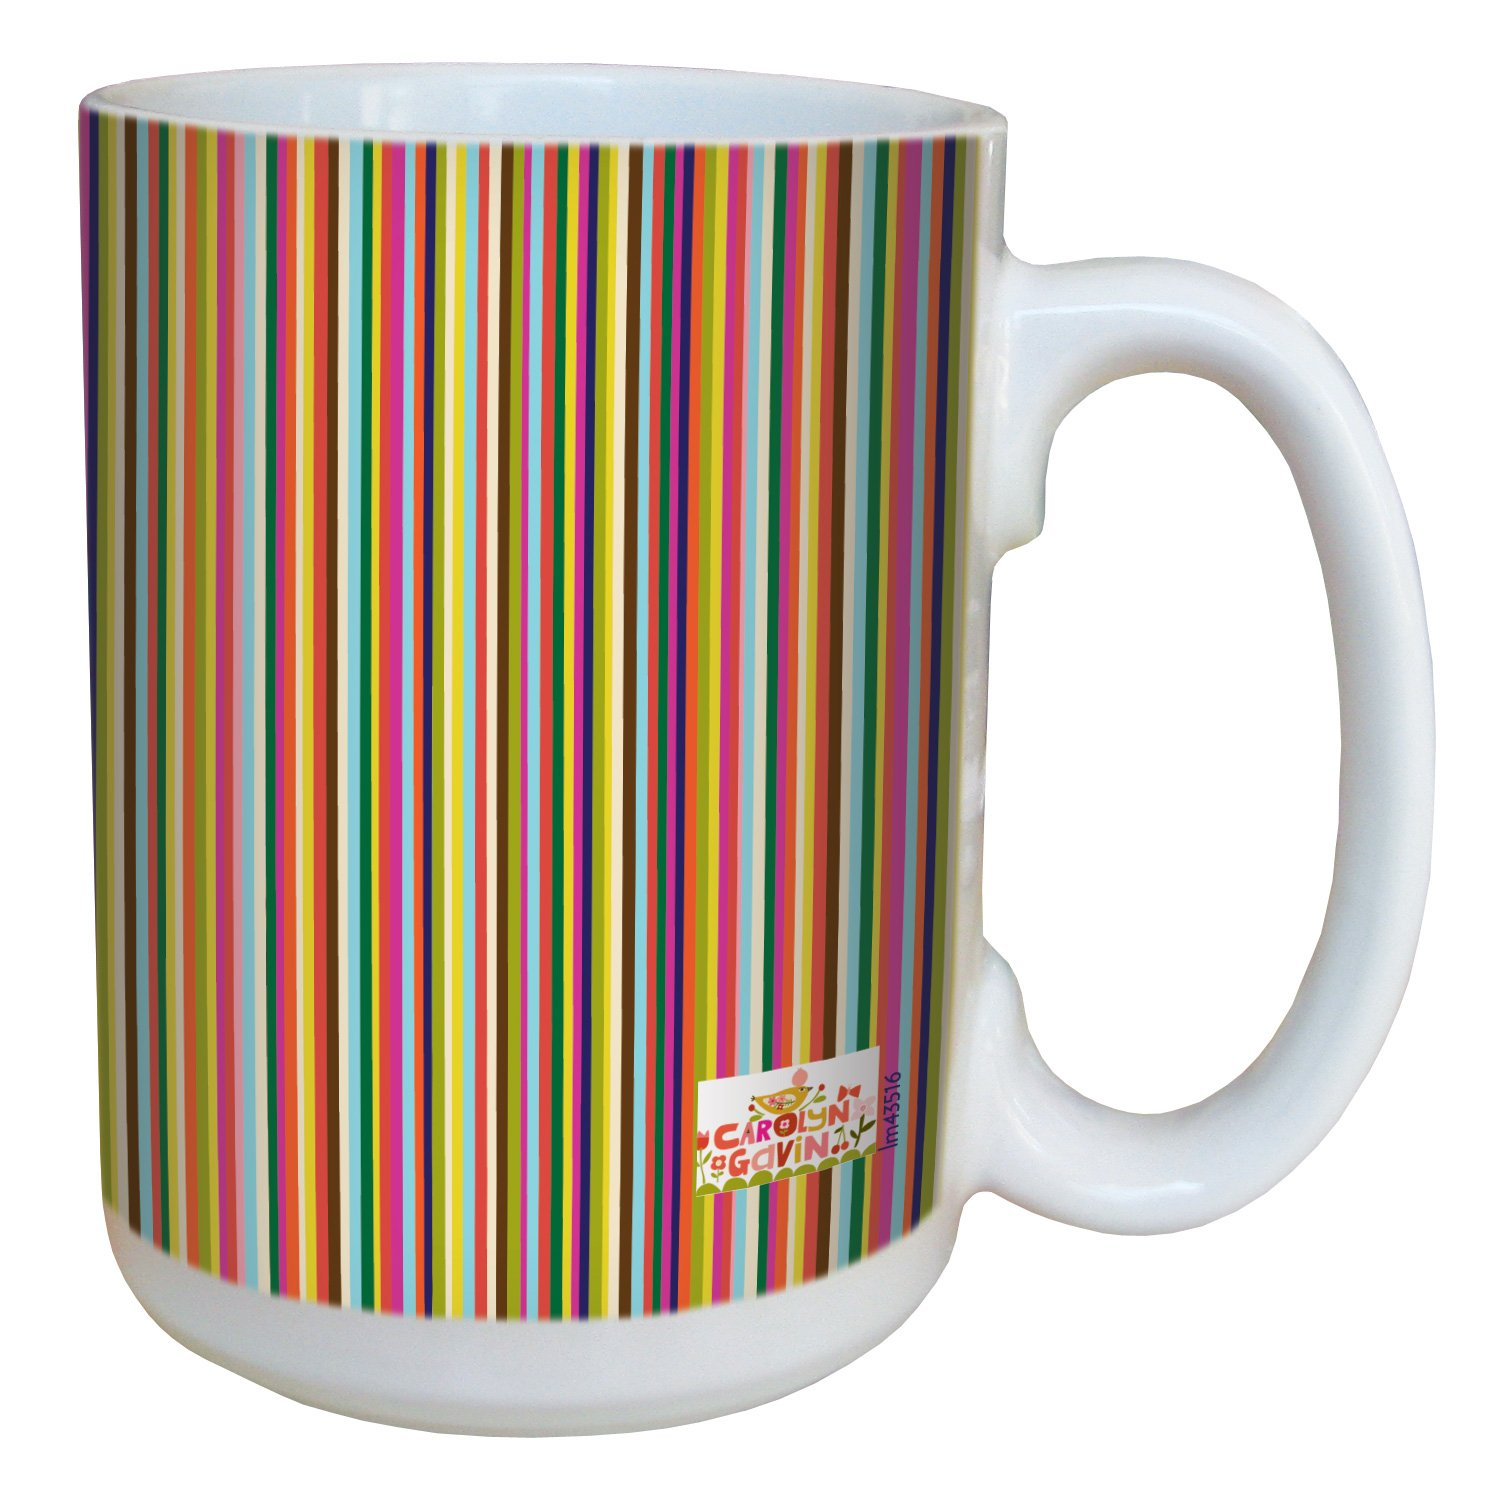 Tree-Free Greetings lm43516 Graphic Candy Stripe by Carolyn Gavin Ceramic Mug with Full-Sized Handle, 15-Ounce